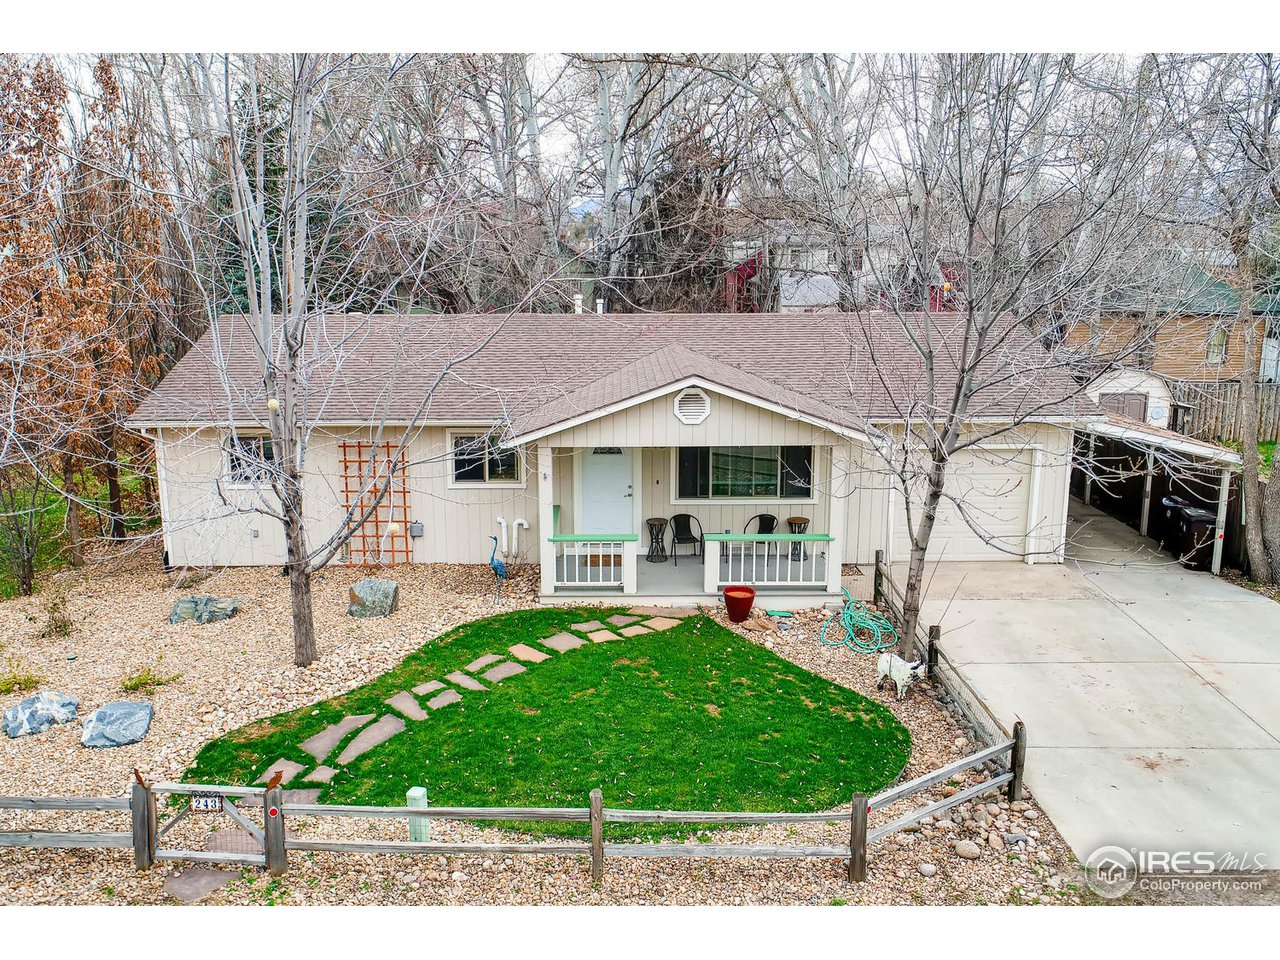 243 4TH AVE, NIWOT, CO 80504